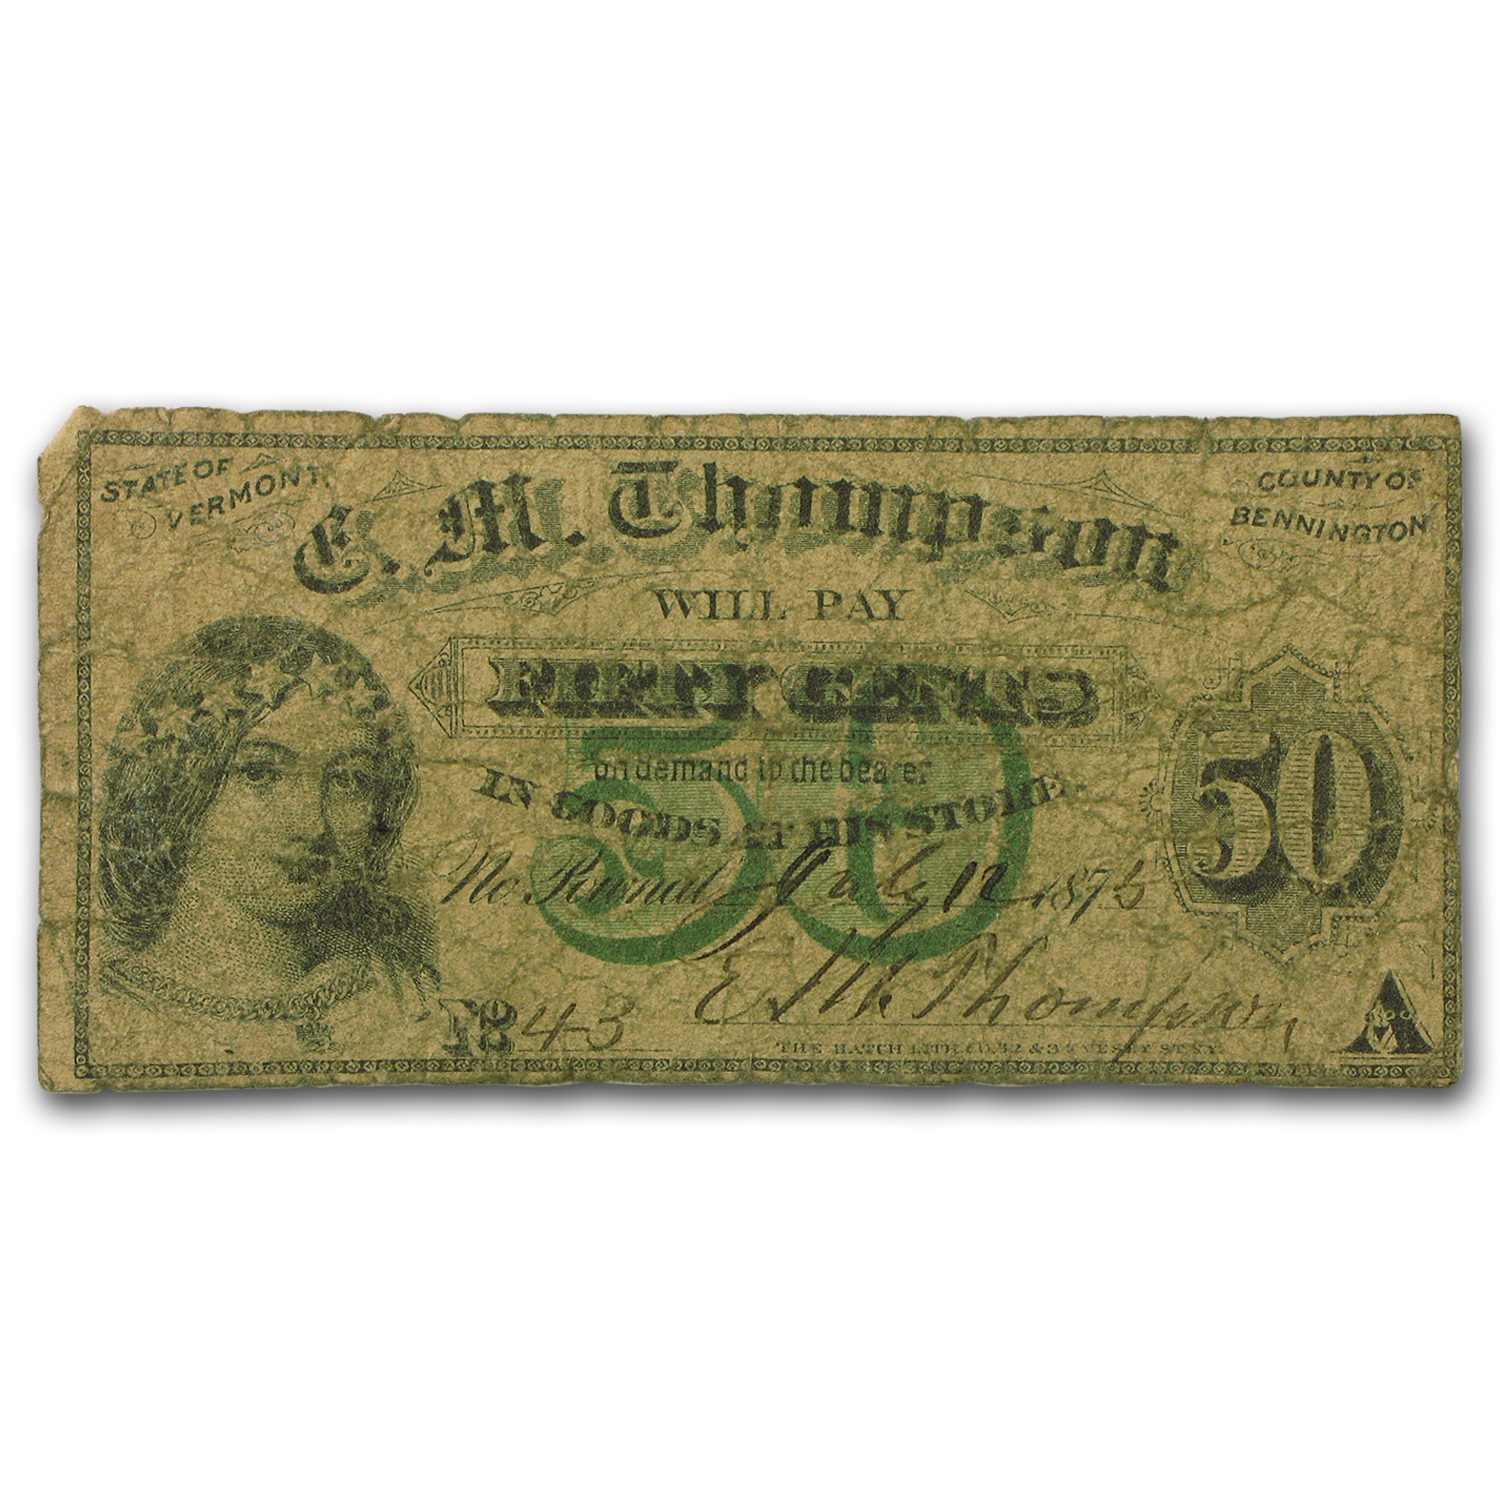 1876 EM Thompson Scrip Bennington, VT 50 Cents Note VG